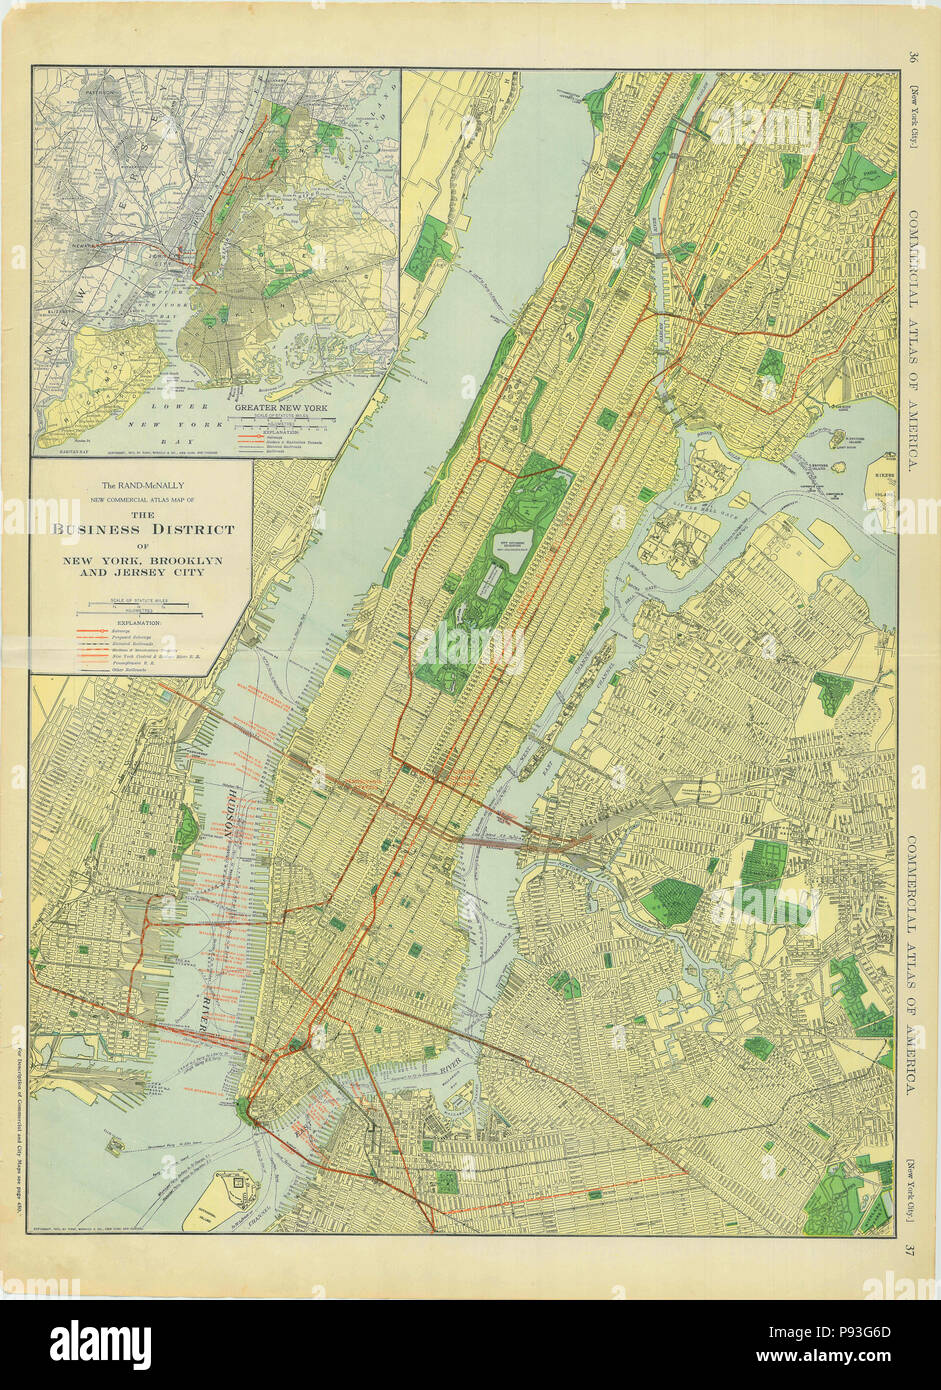 Map Of Greater New York City Area.Map Of New York City Stock Photos Map Of New York City Stock